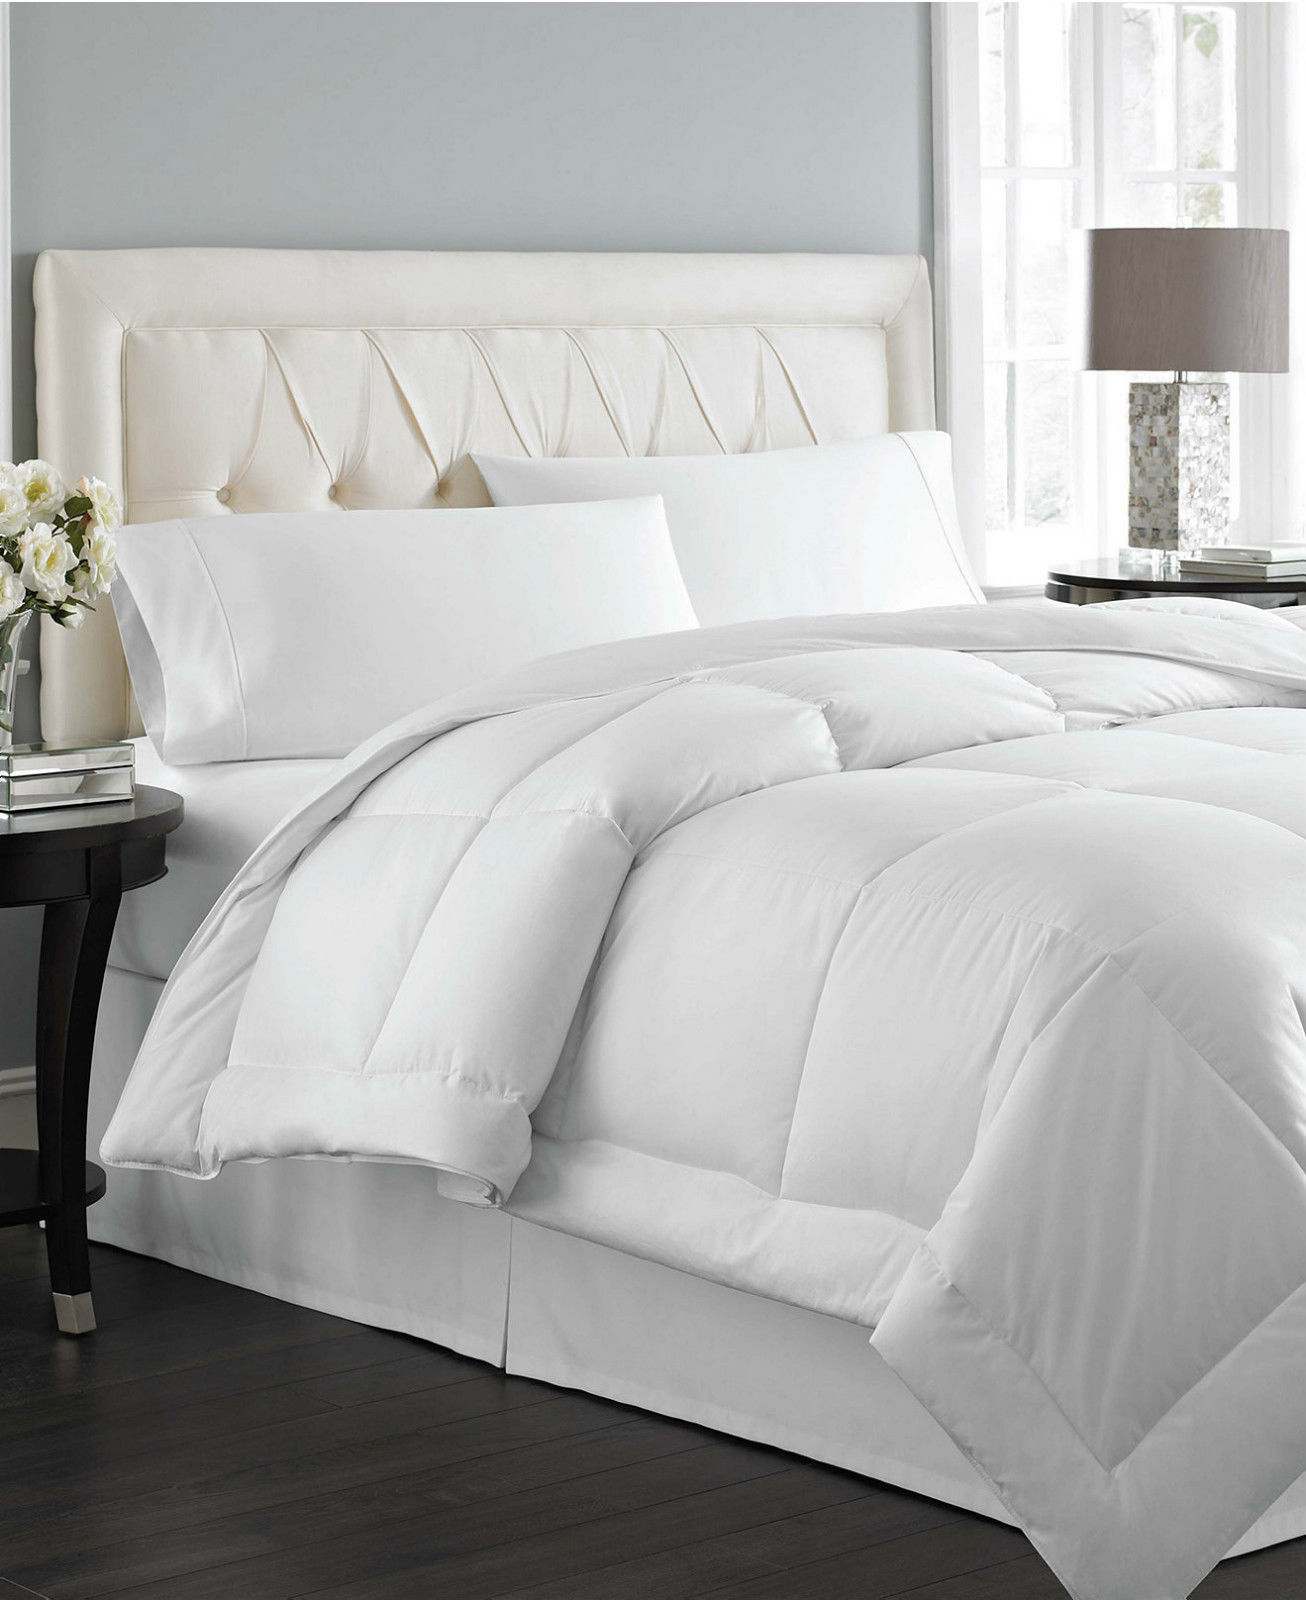 Down Comforter Amazon | Pacific Coast Comforter | Best Duvet Insert